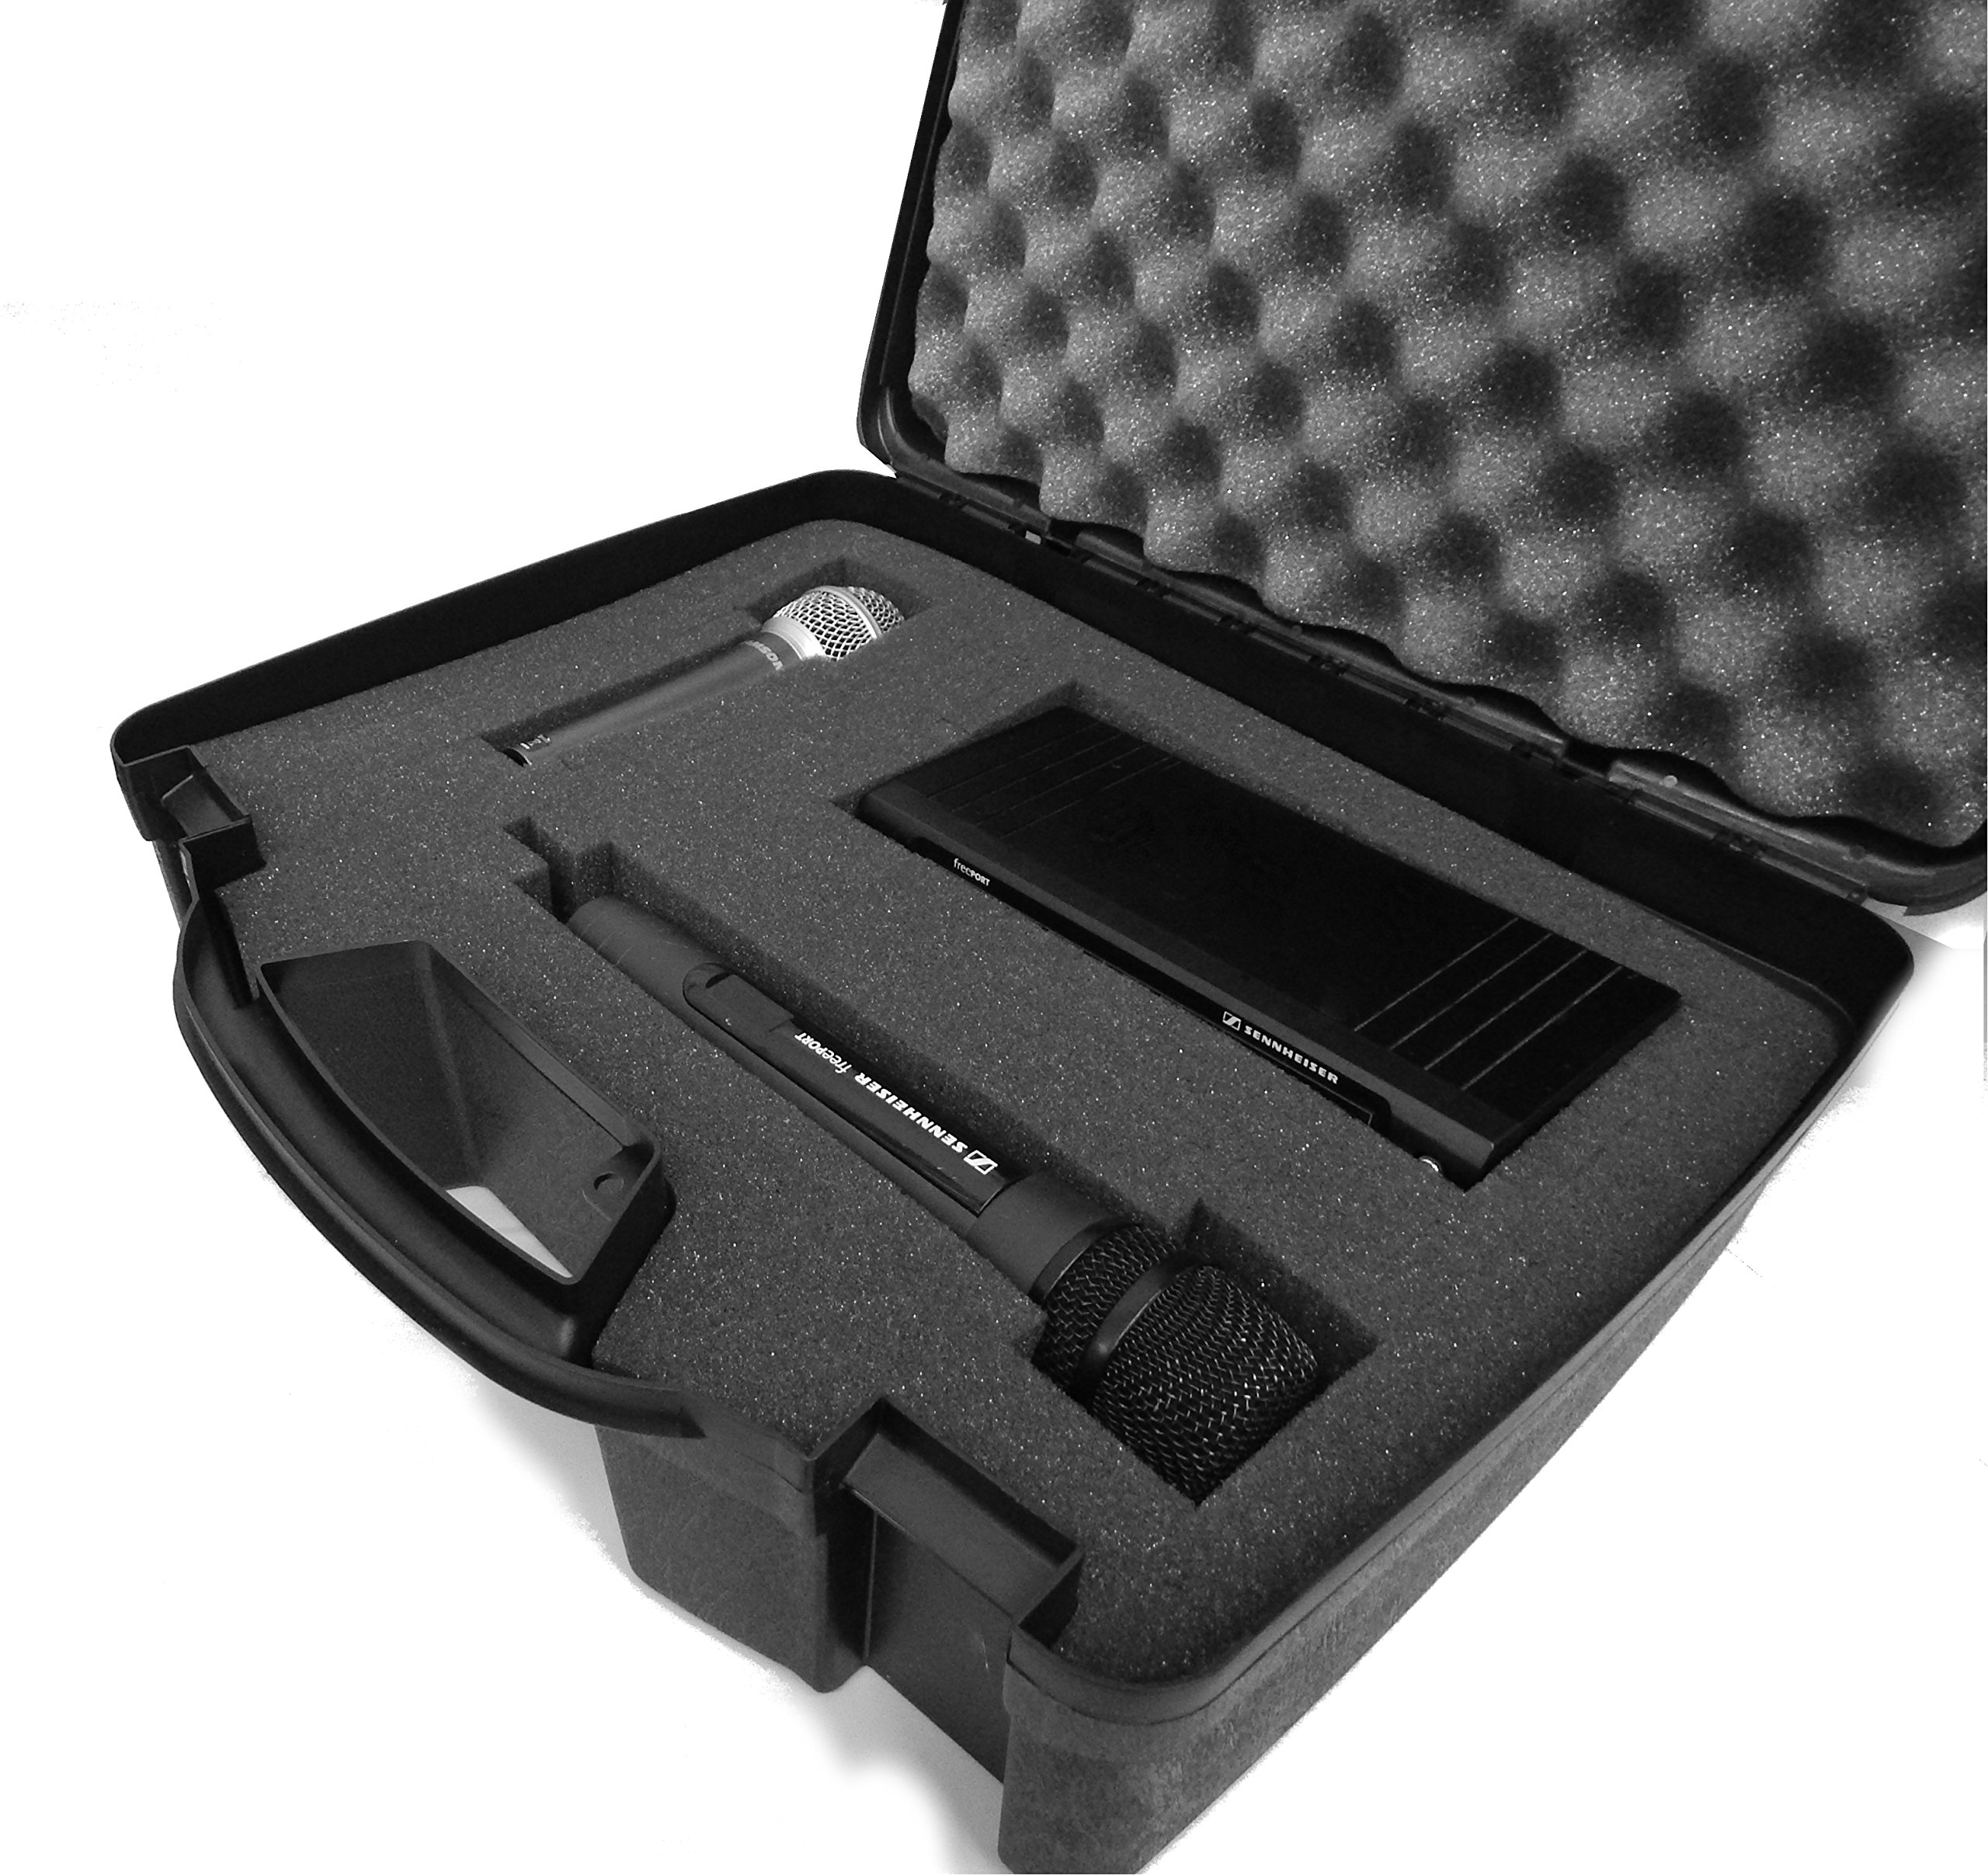 STUDIOCASE Wireless Microphone System Hard Case w/ Foam - Fits Sennheiser , Shure , Audio-Technica , Nady , VocoPro , AKG With Receiver , Body Transmitter , UHF Headset , Lavalier and Handheld Mics by CASEMATIX (Image #5)